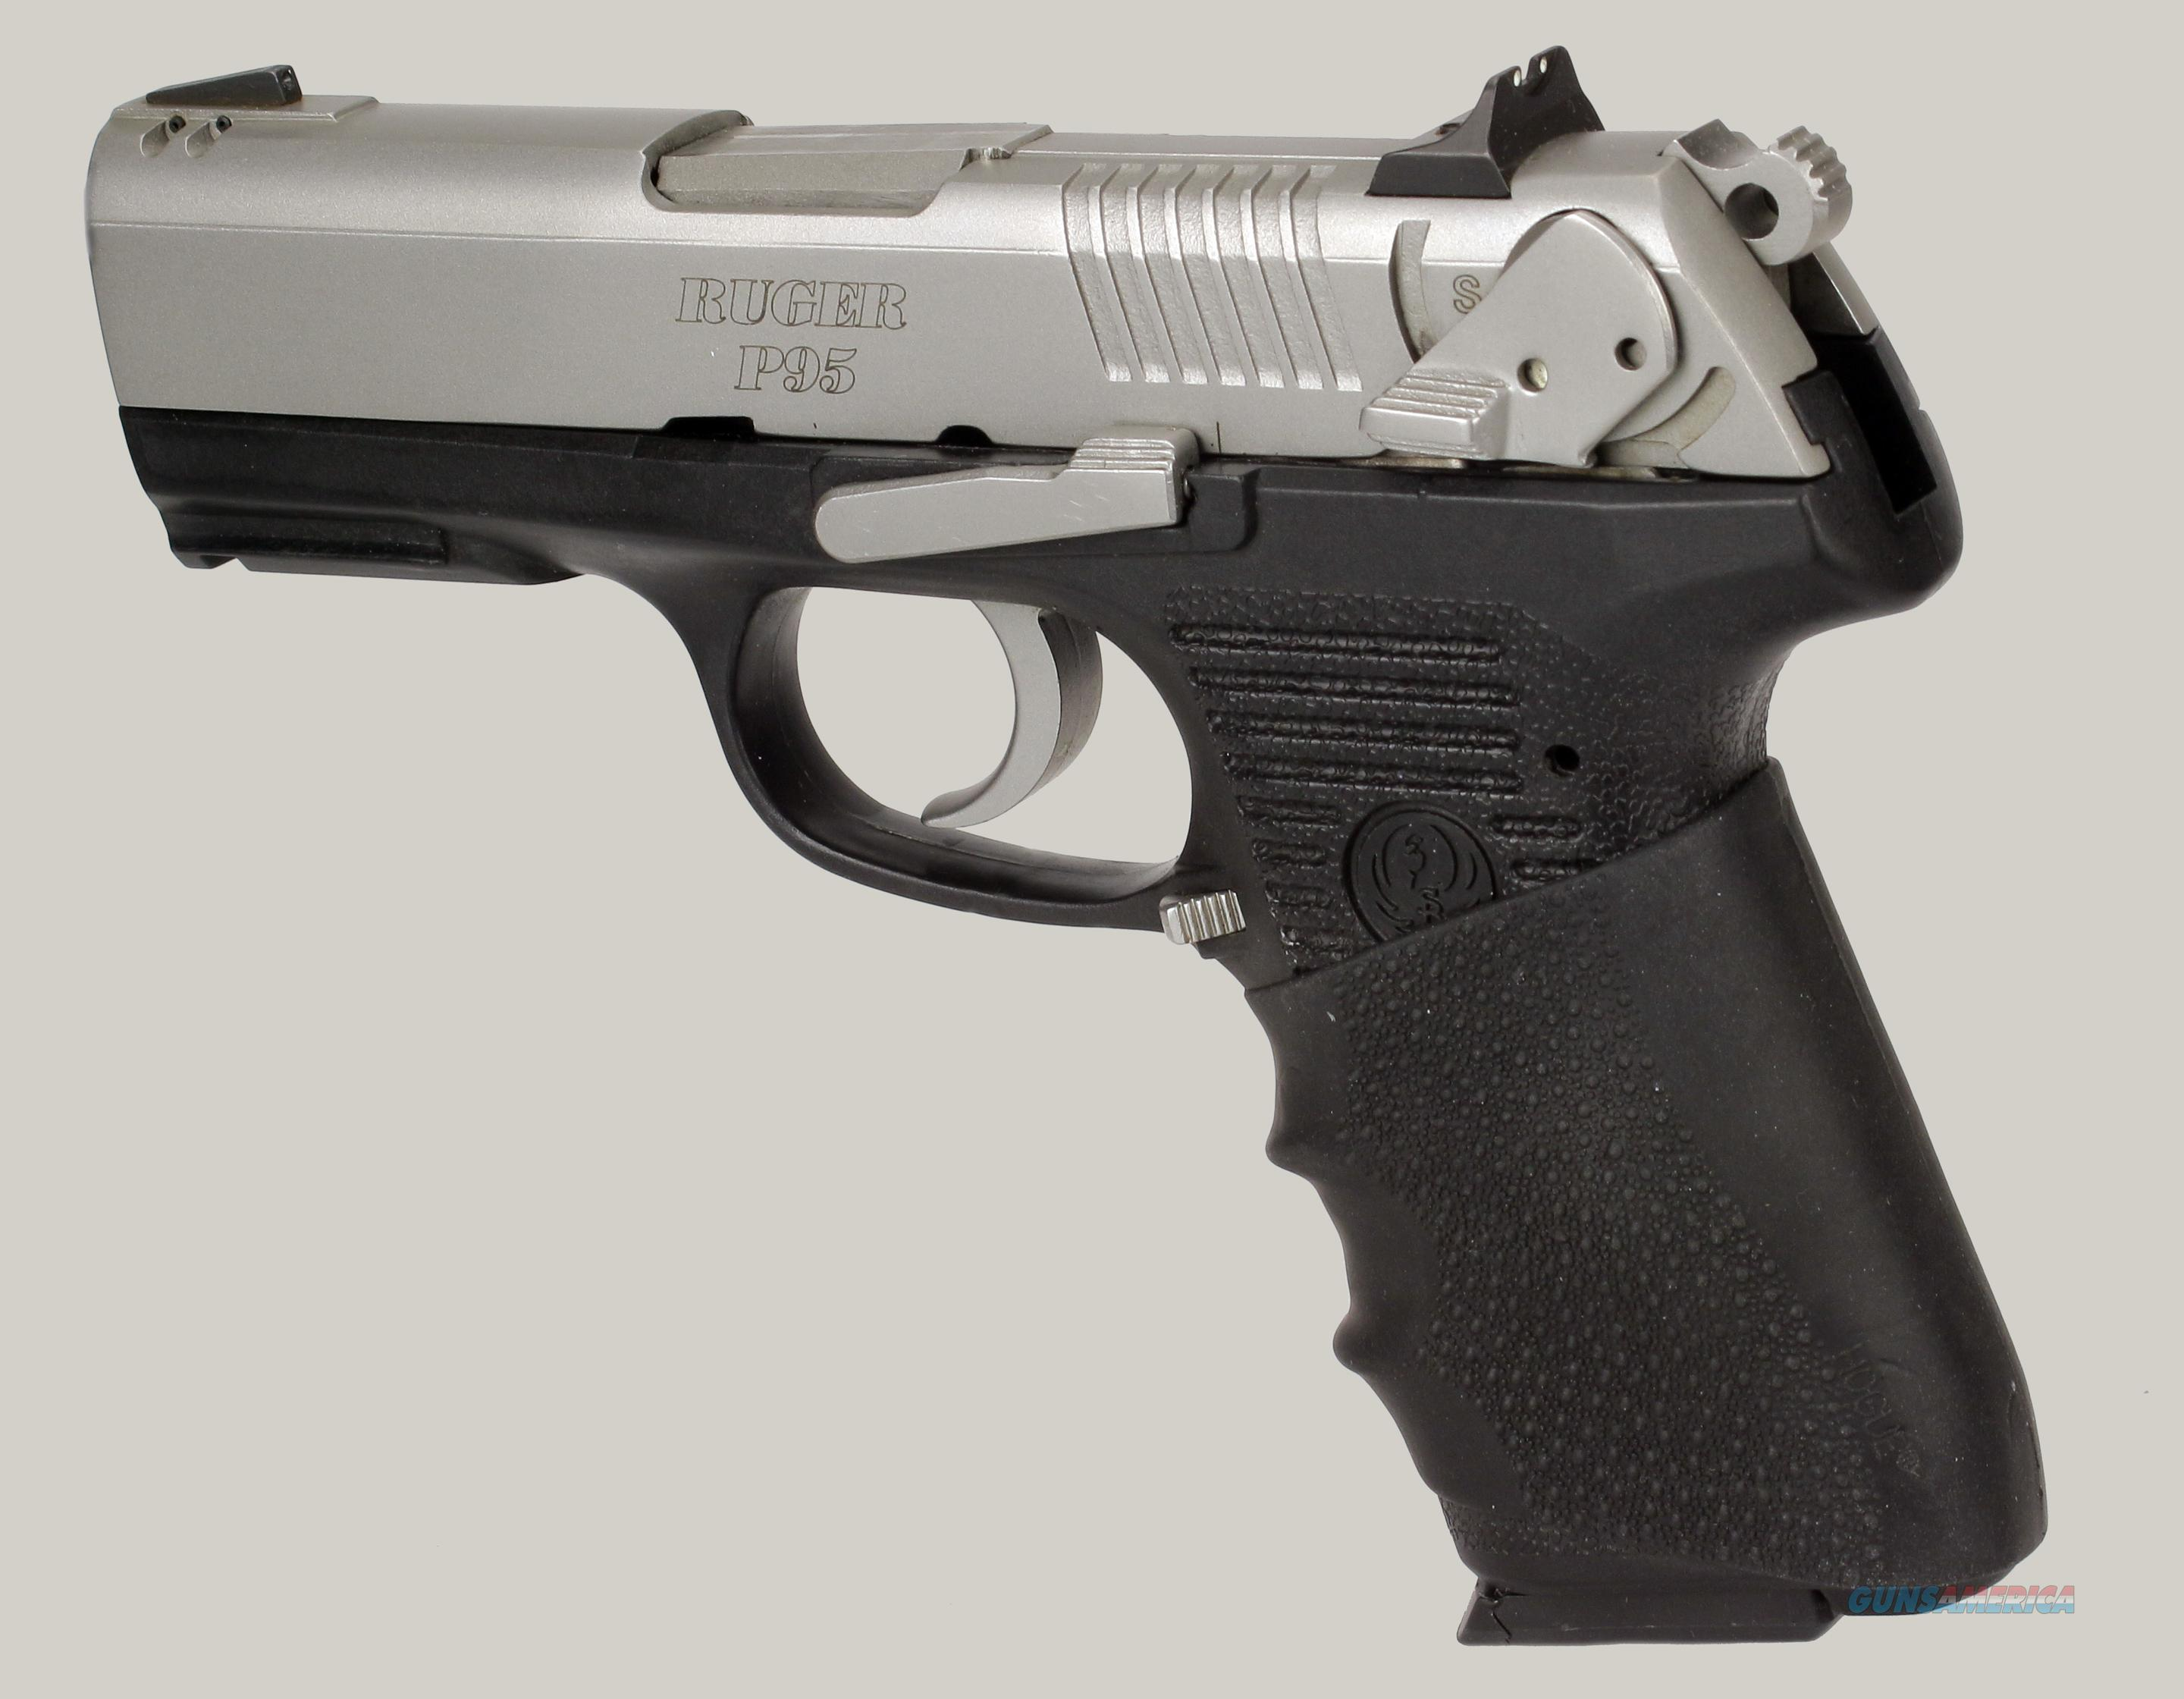 Ruger 9mm Pistol Model P95 for sale